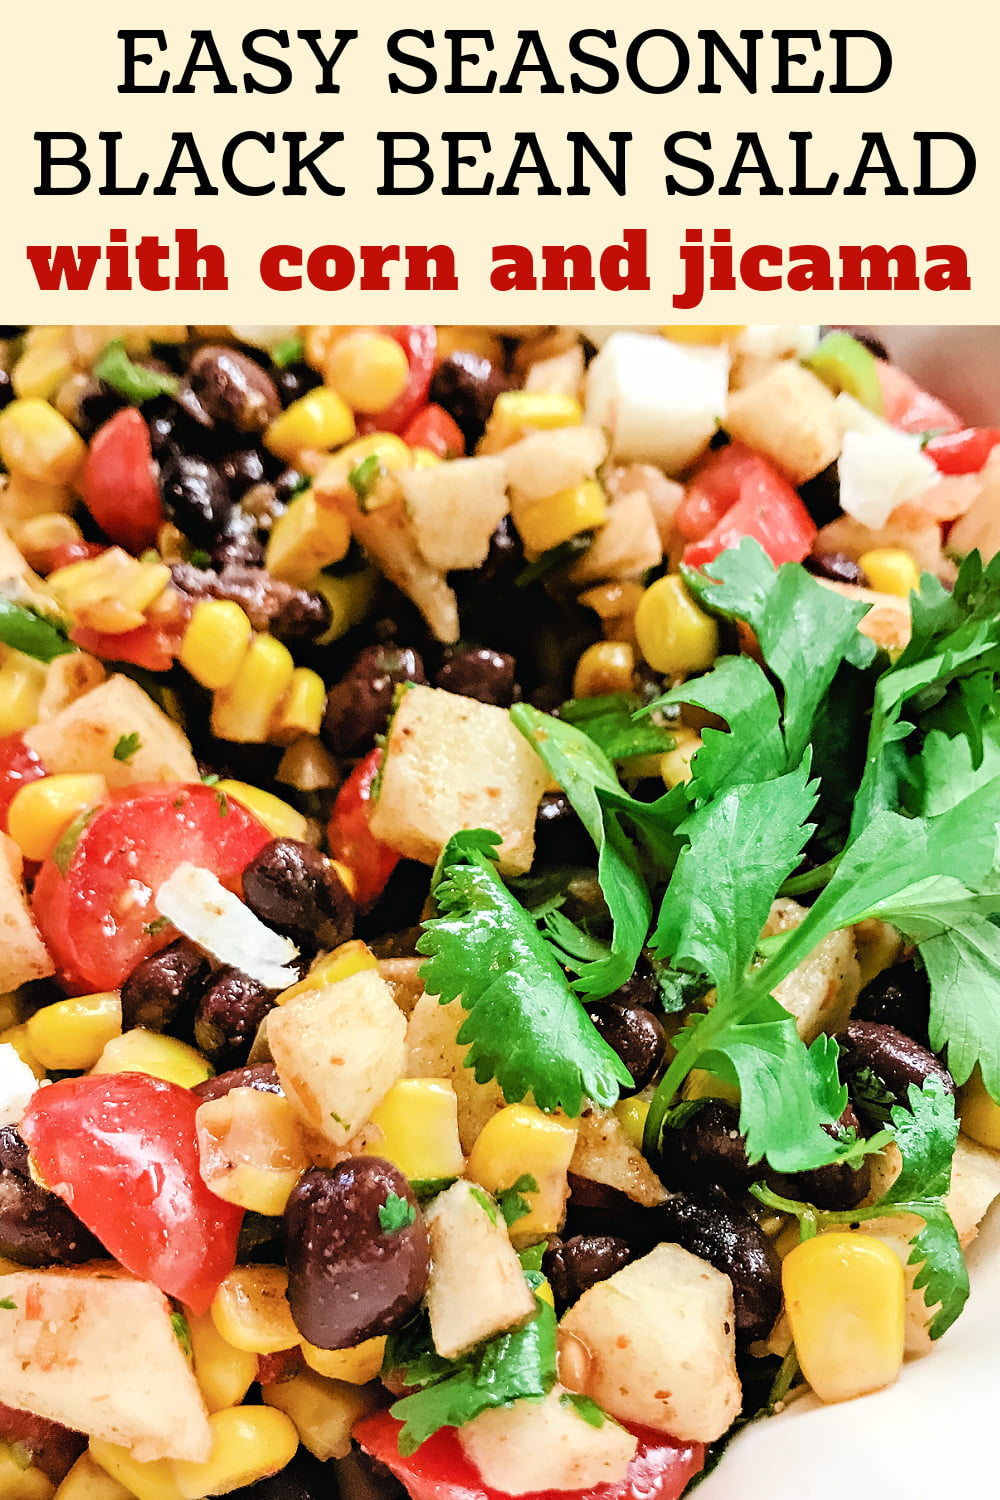 A bowl brimming with Mexican corn salad, garnished with cilantro.